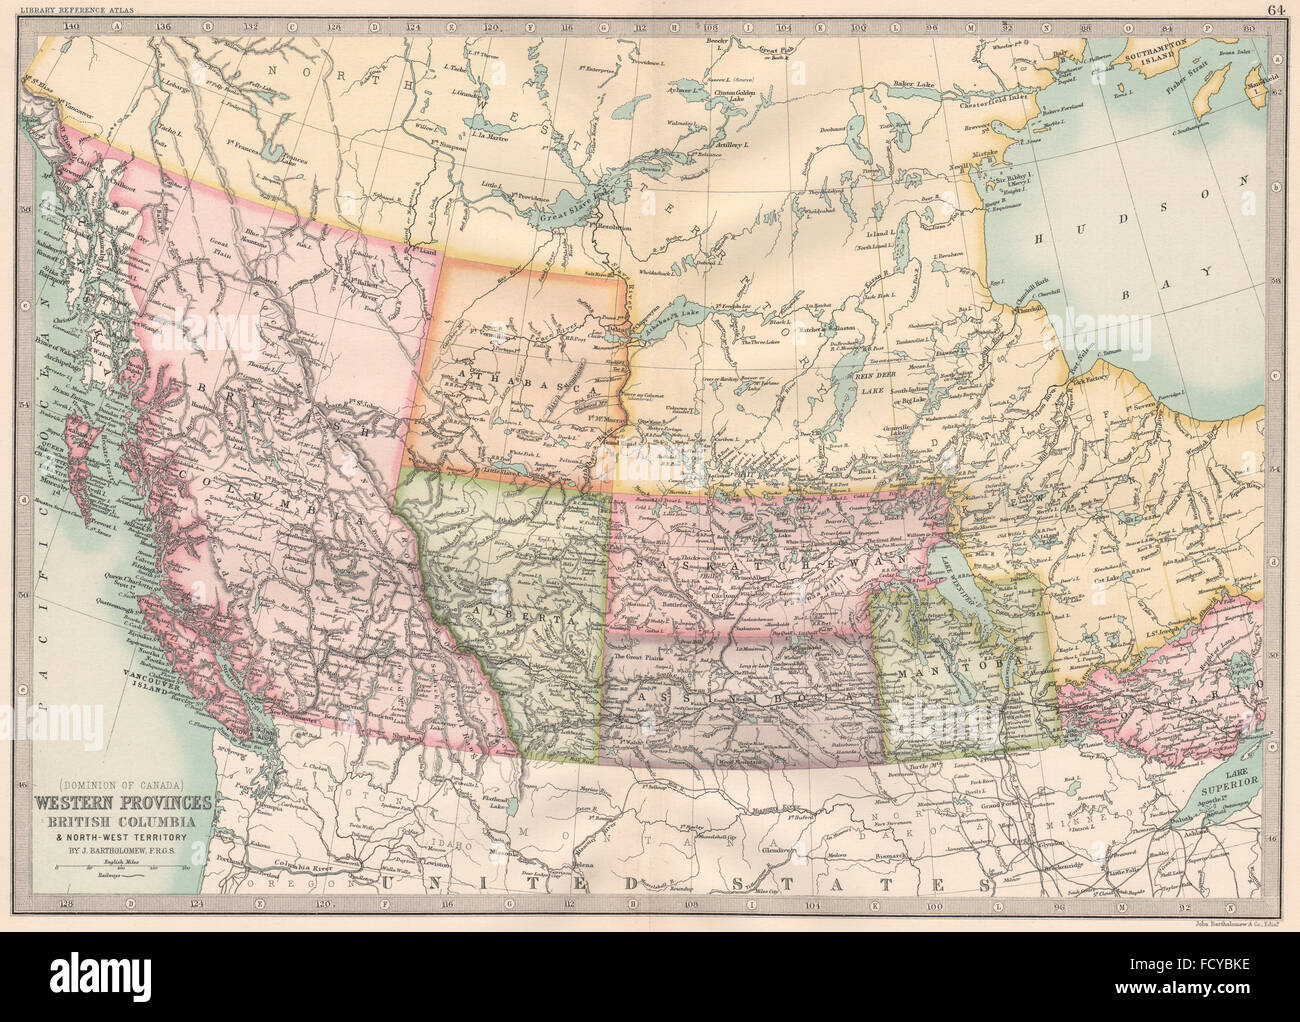 Map Of Western Canada Provinces.Old Map Western Canada Stock Photos Old Map Western Canada Stock